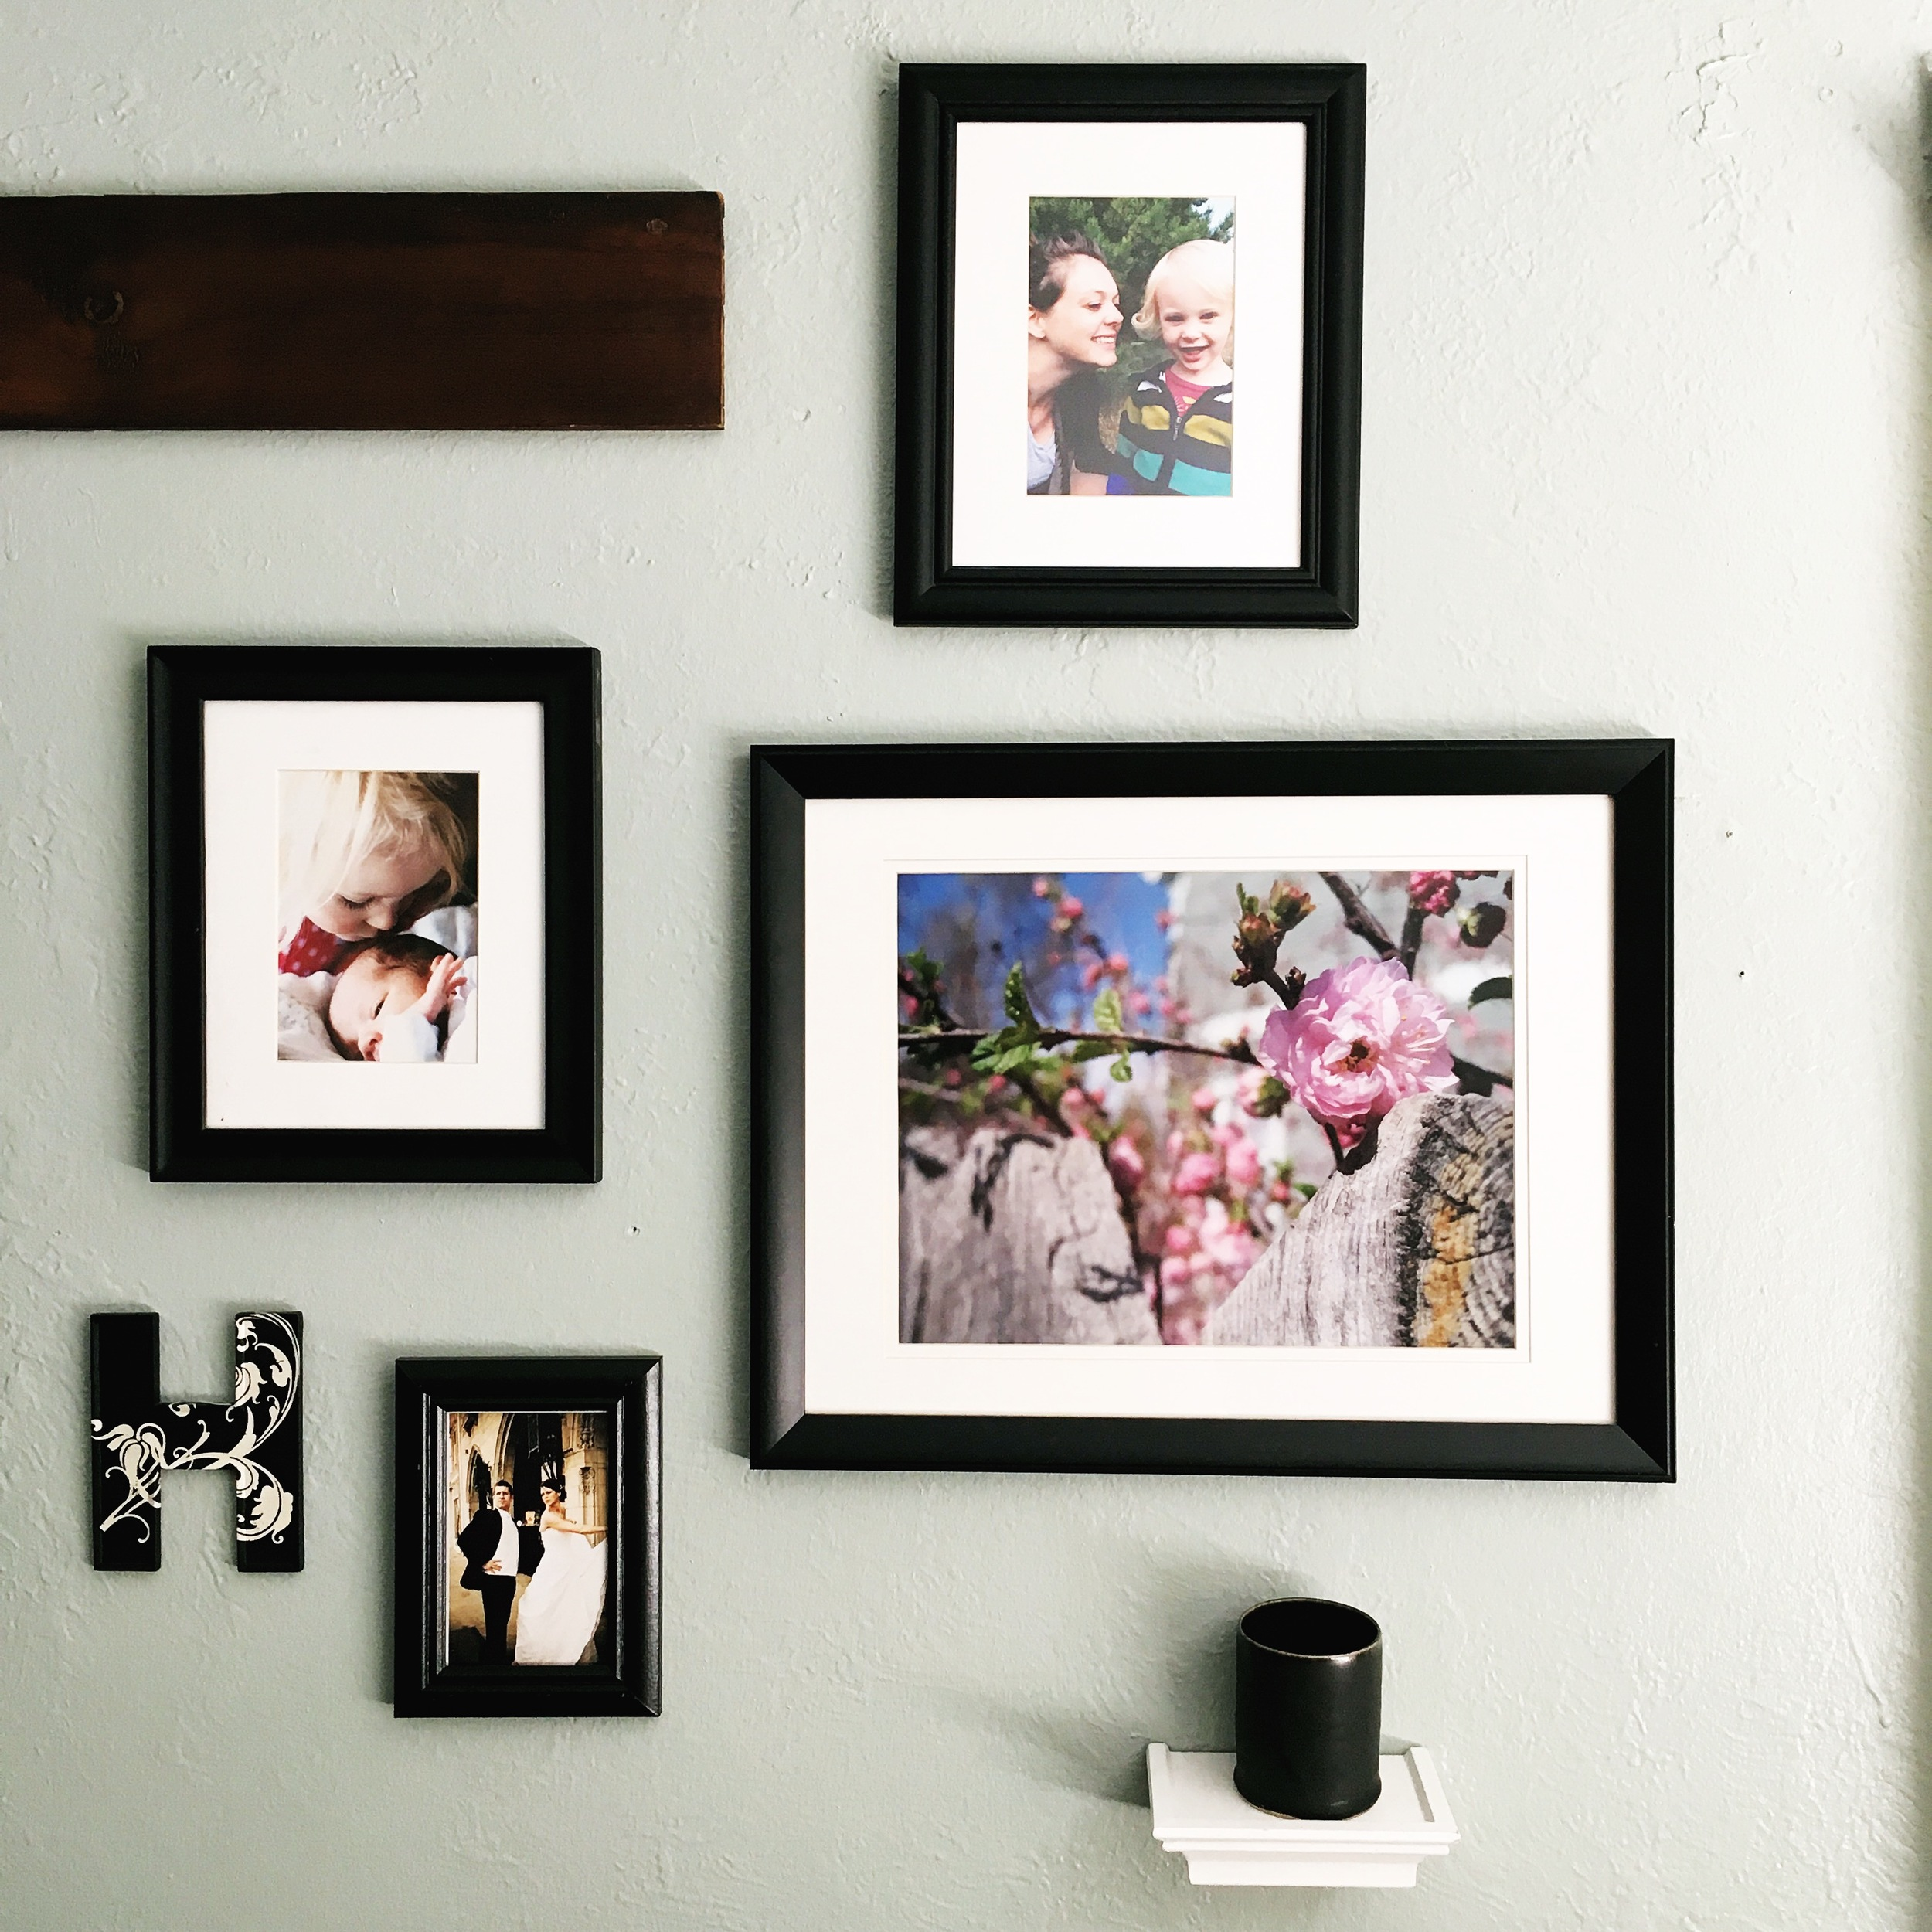 Change out pictures to keep home decor fresh!